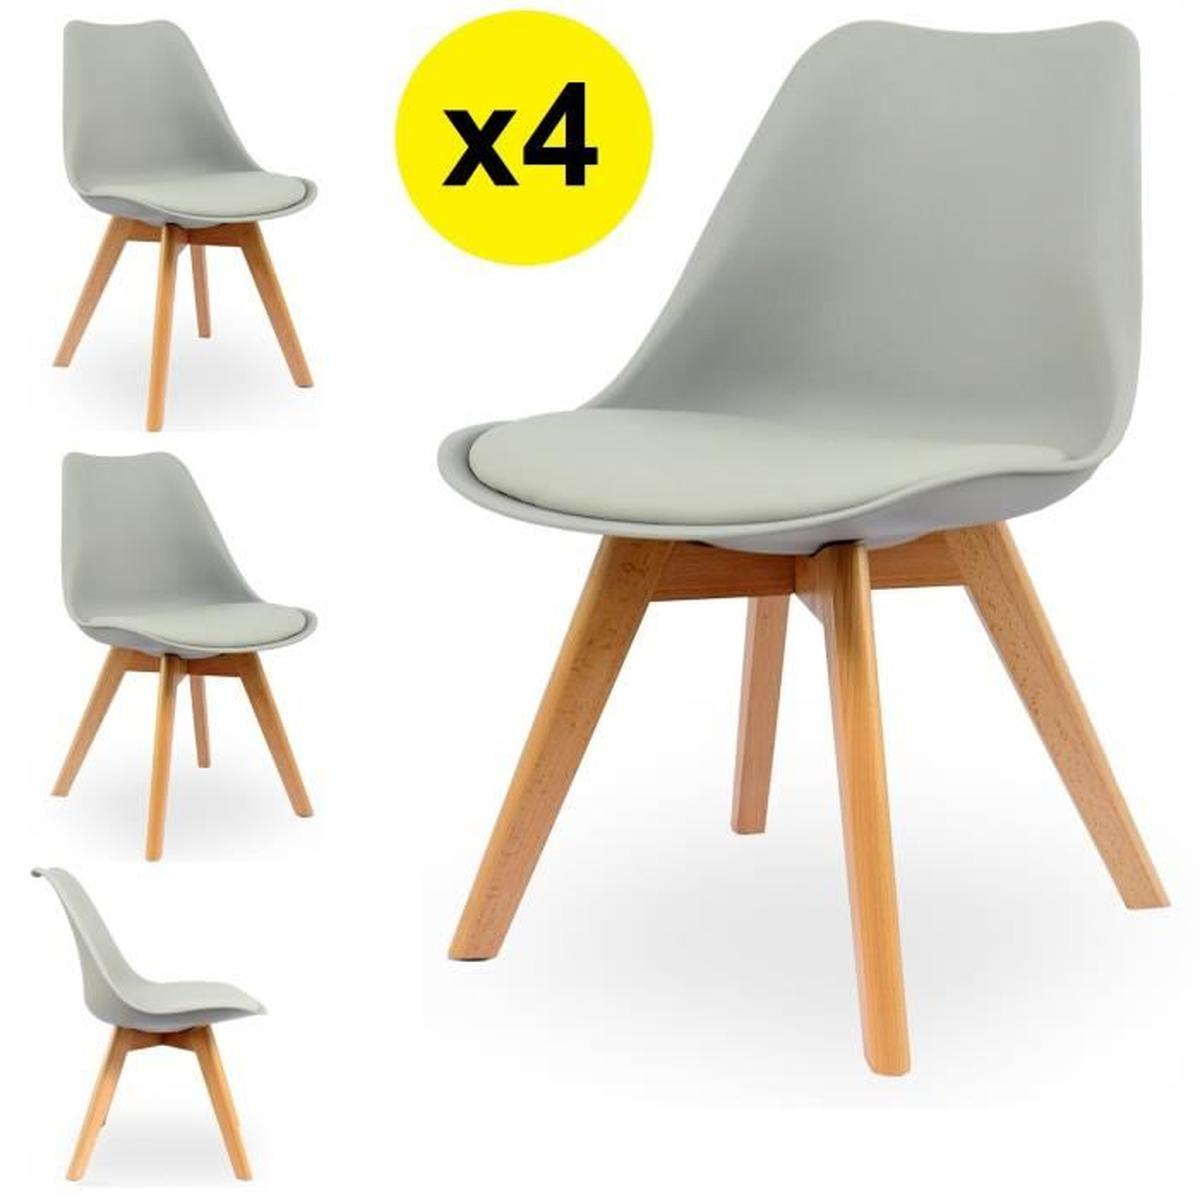 Chaise scandinave avis